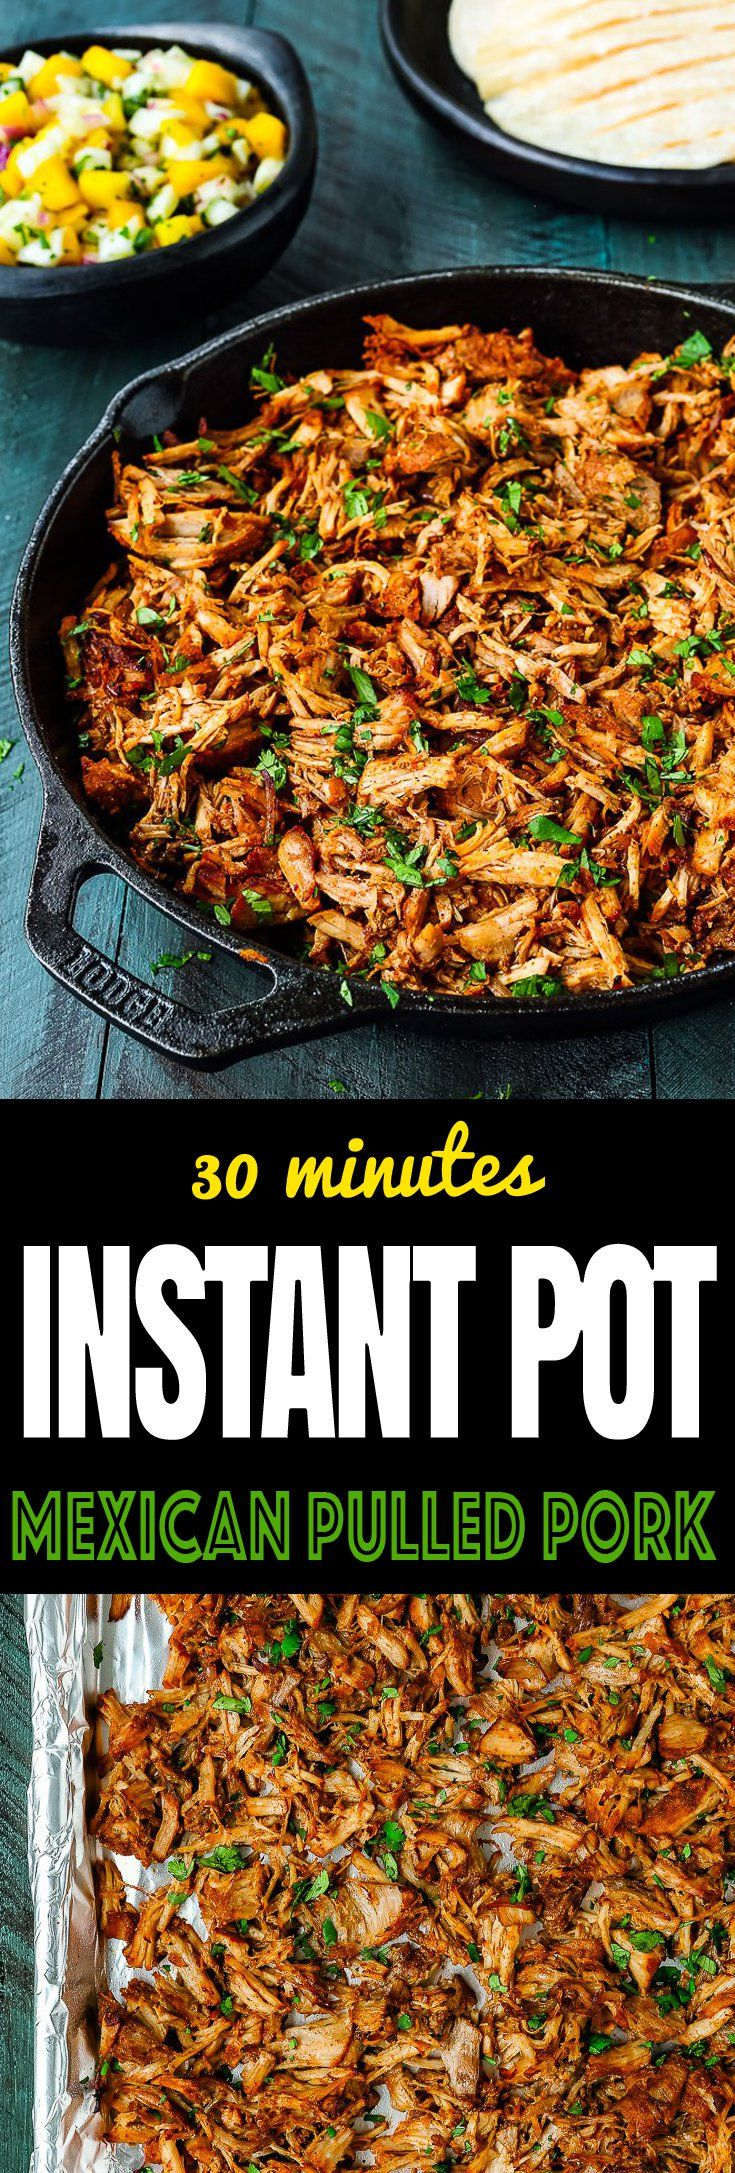 Instant Pot Mexican Pulled Pork Recipe #mexicancooking